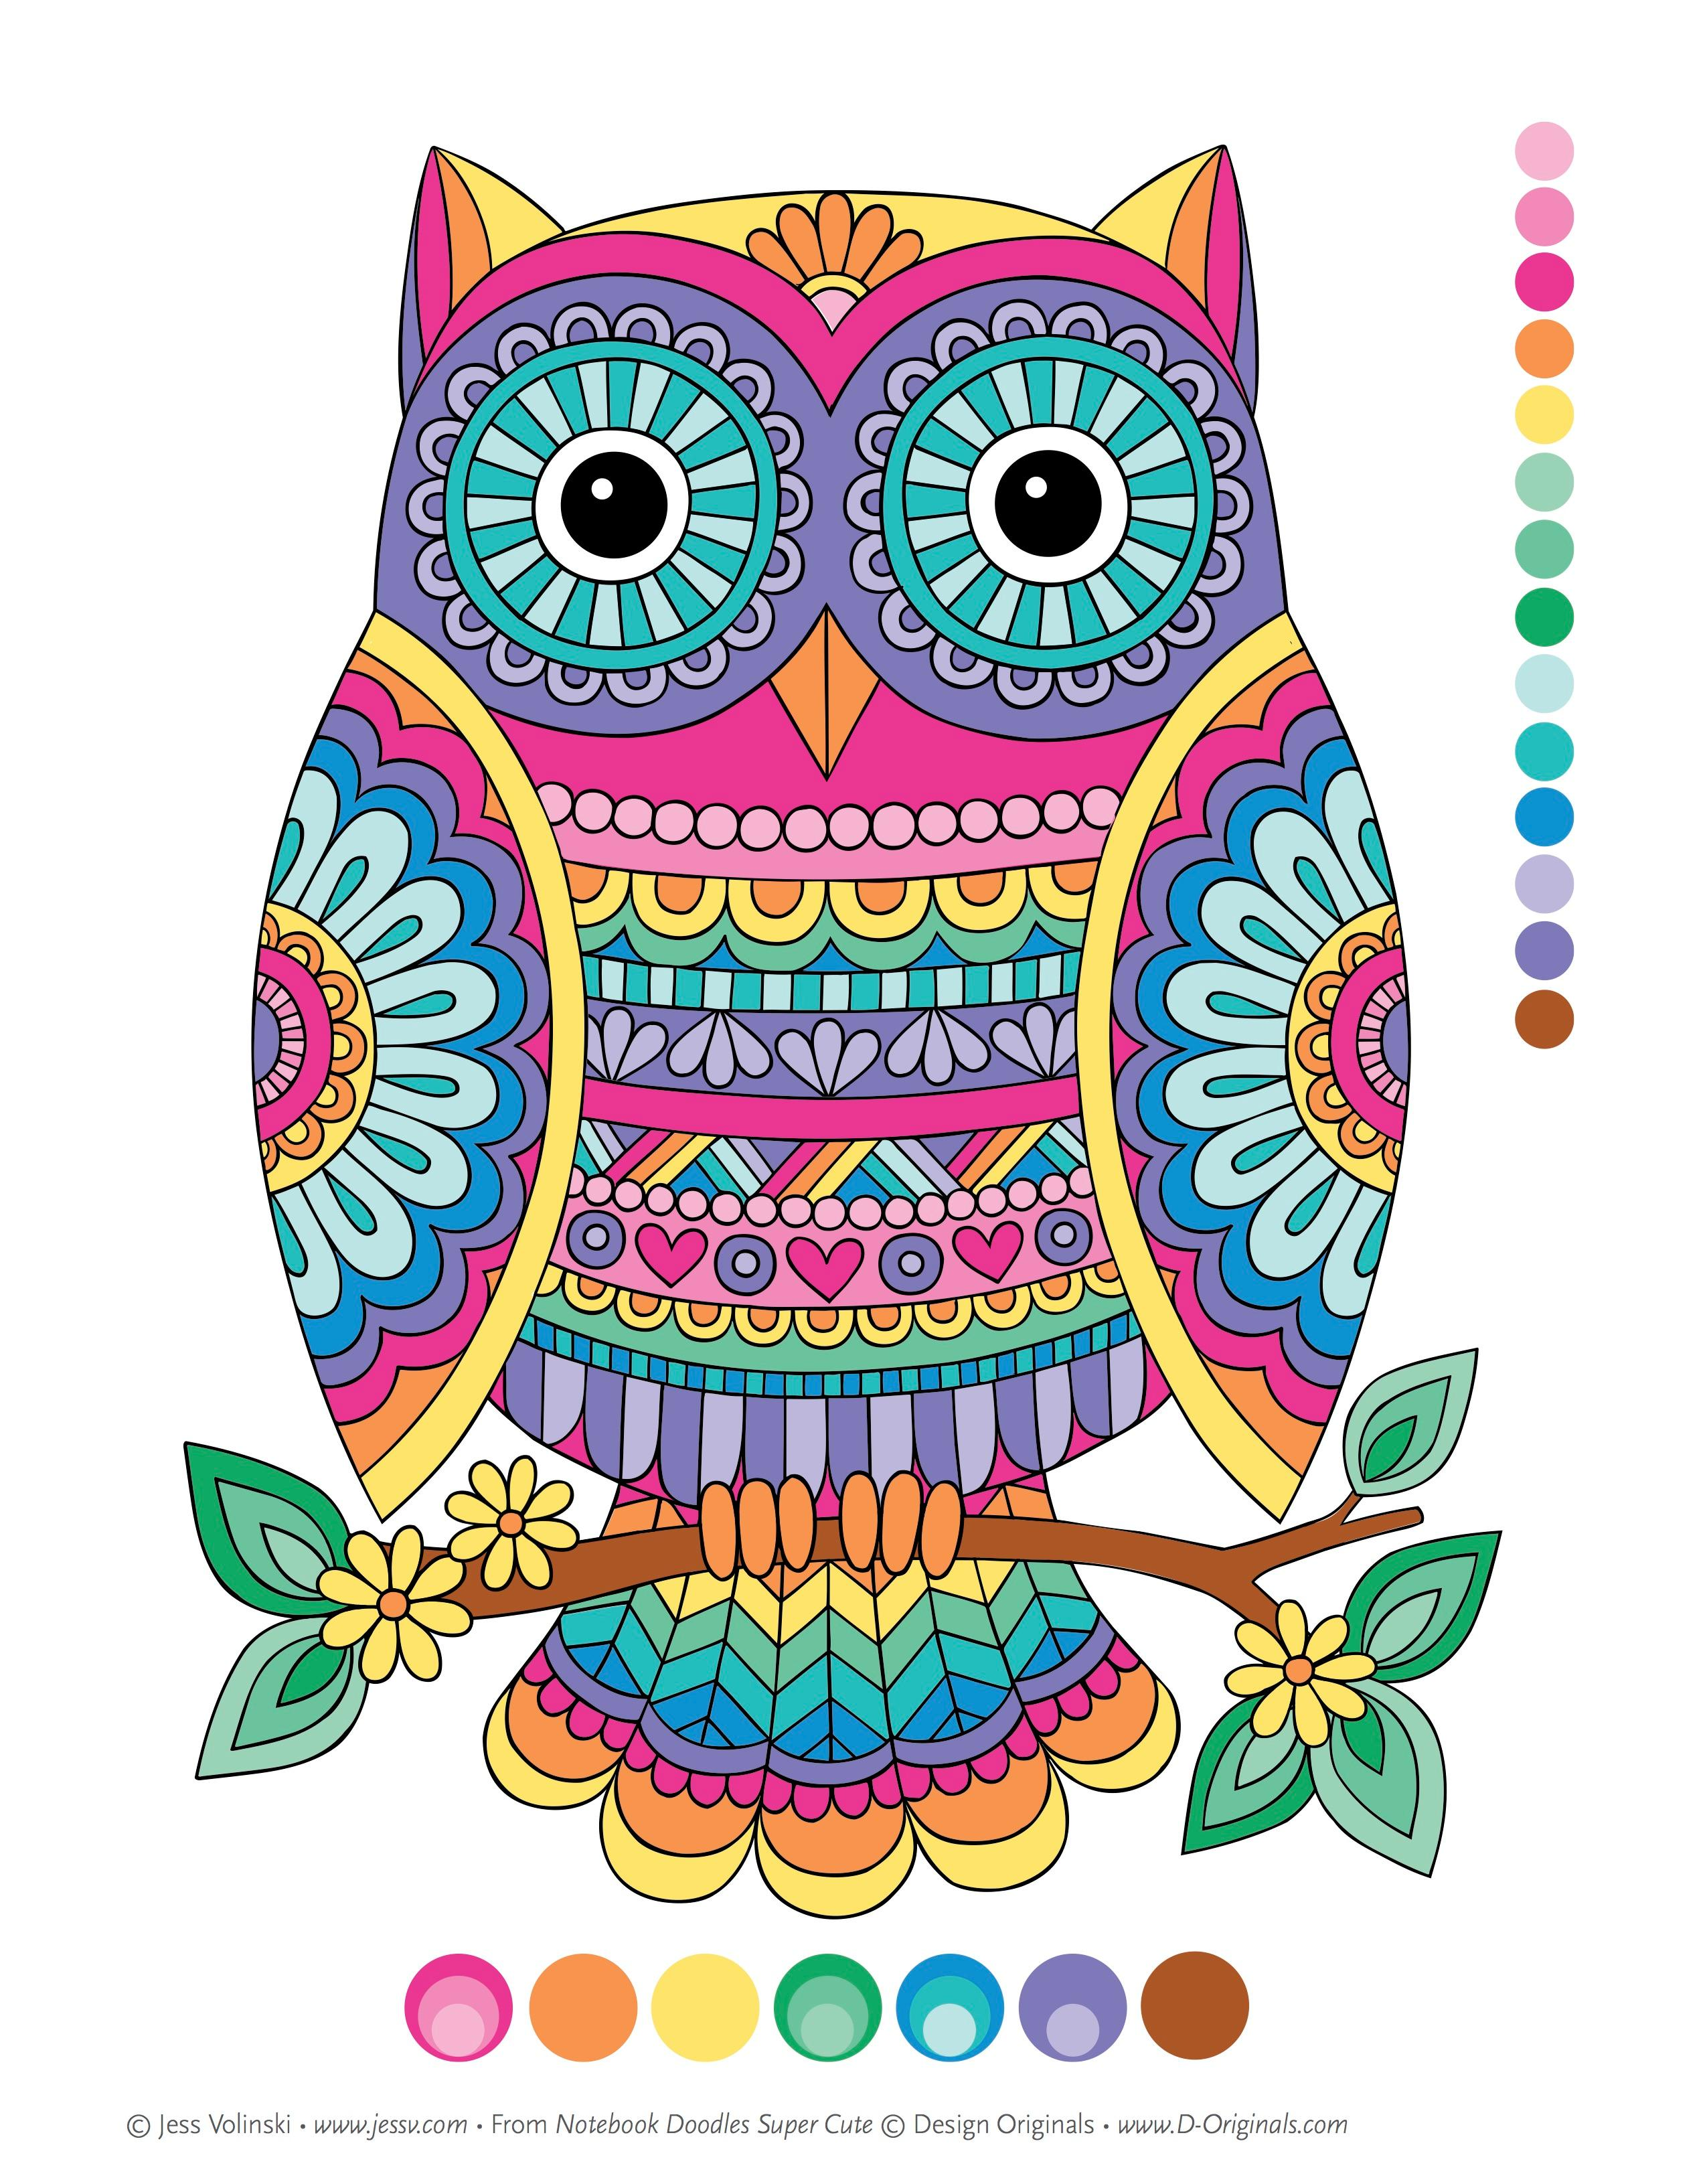 Amazon.com: Notebook Doodles Super Cute: Coloring & Activity Book ...